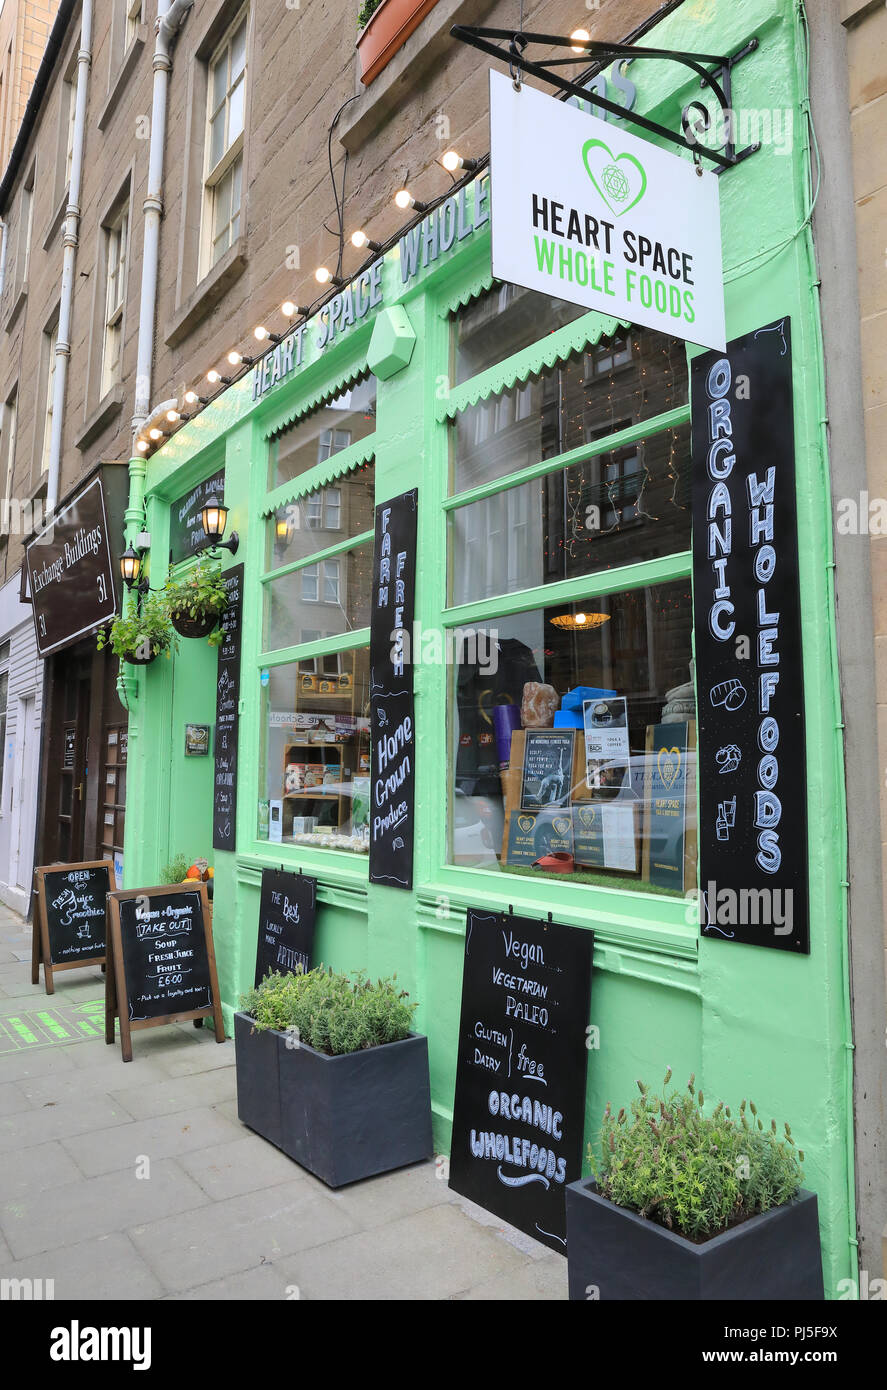 Heart Space Whole Foods on Exchange Street in central Dundee, the 'City of Discovery', in Scotland, UK - Stock Image